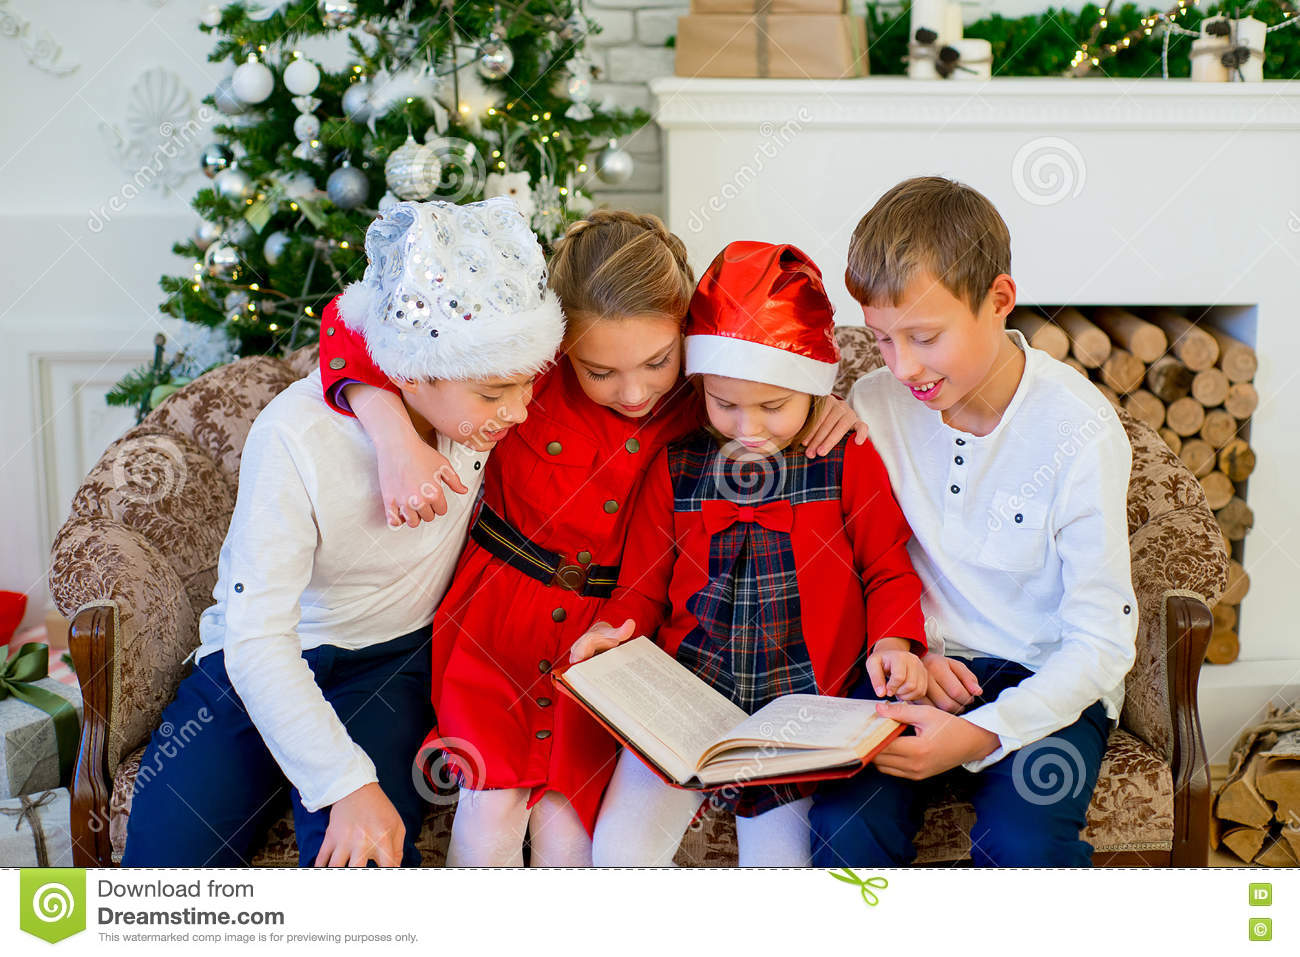 Kids Reading A Story Book On Christmas Time Stock Image - Image of ...